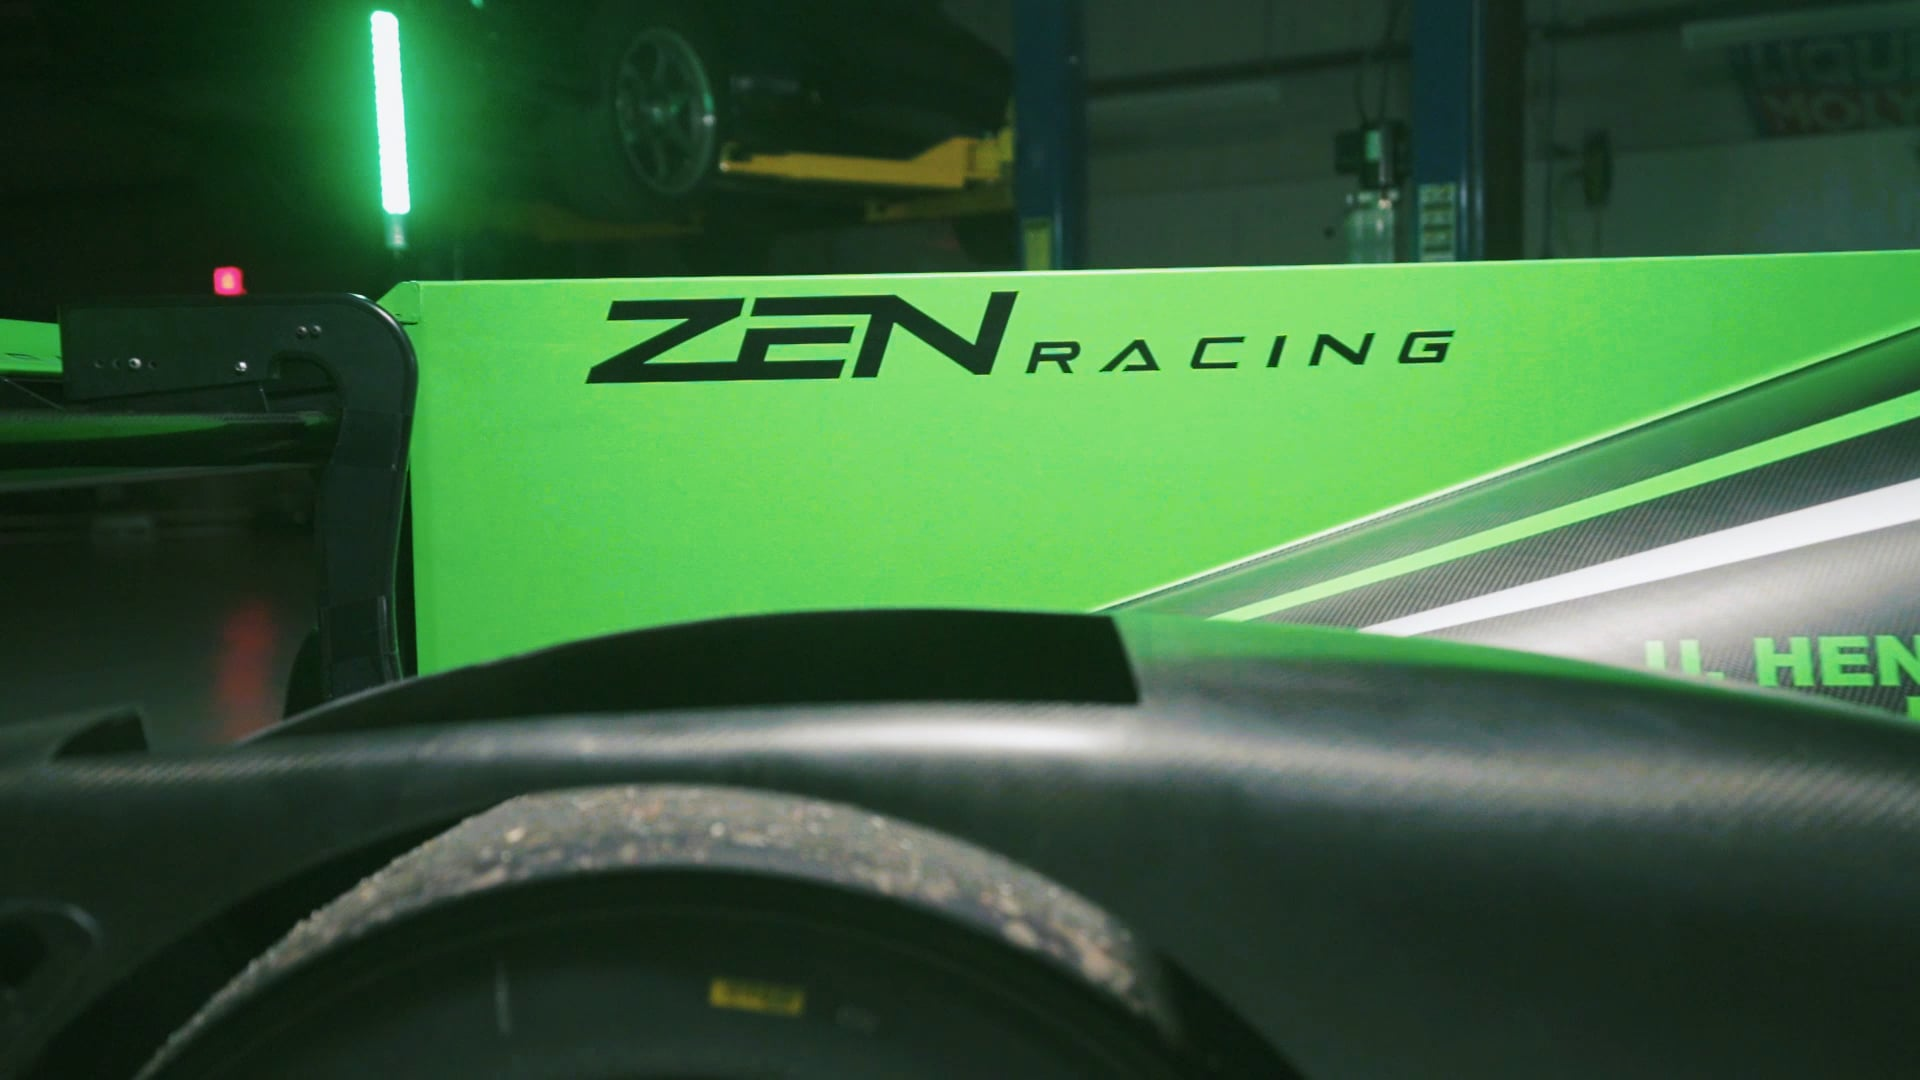 Chillout systems: Zen Racing